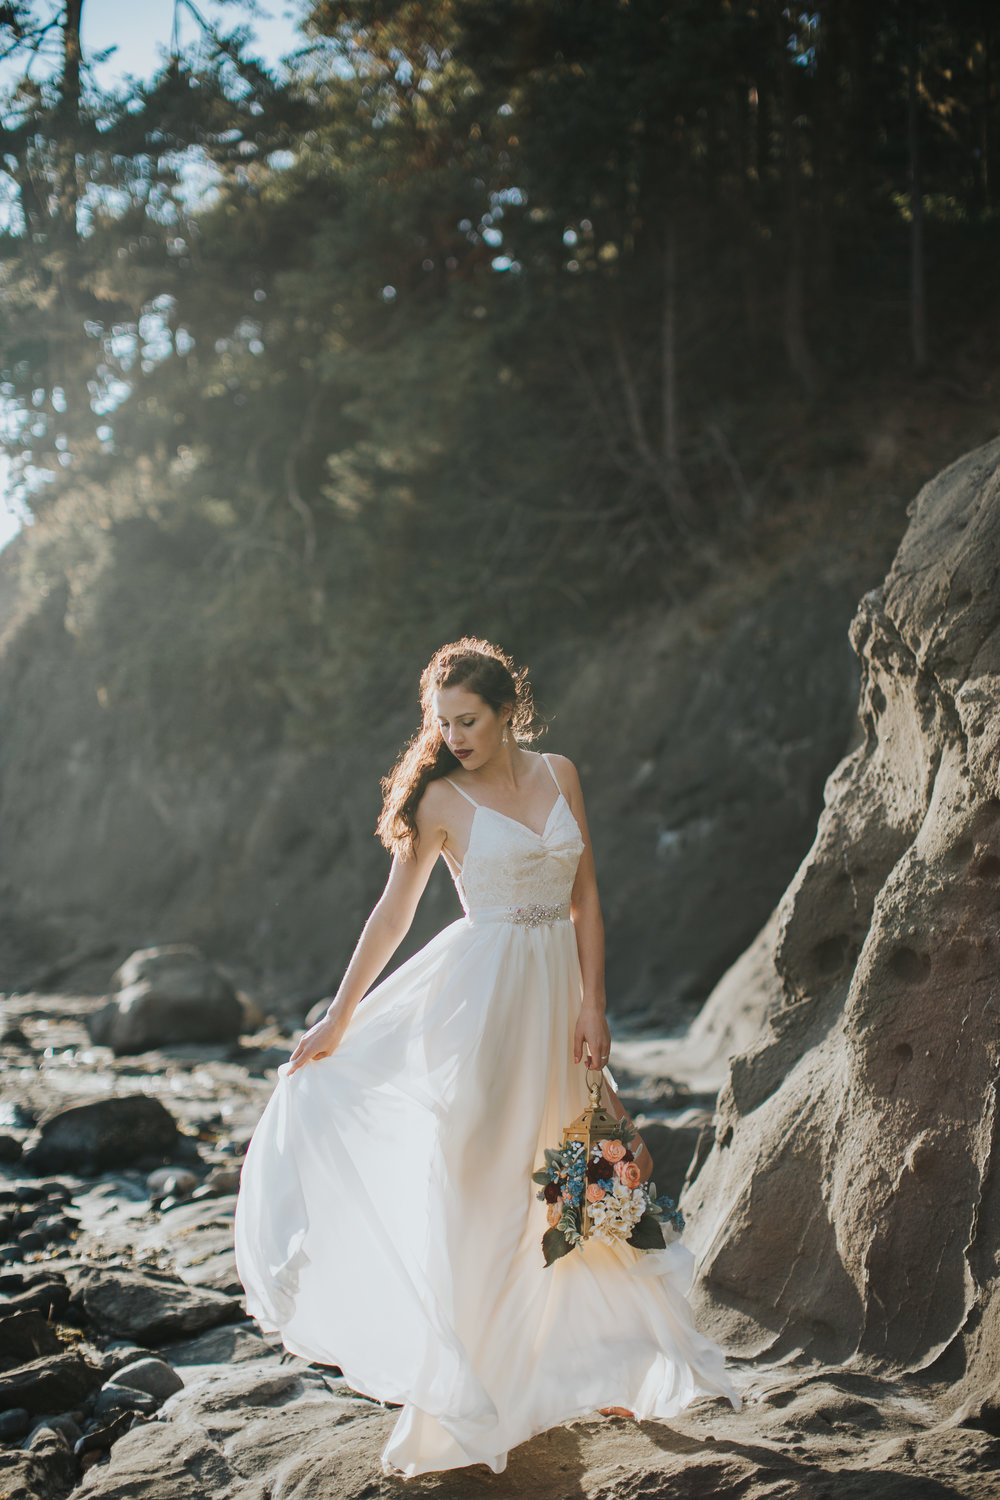 Port-Angeles-Salt-Creek-beach-wedding-bride-PNW-olympic-peninsula-photographer-Kayla-Dawn-Photography-outdoors-golden-hour-dancer-dress (5).jpg